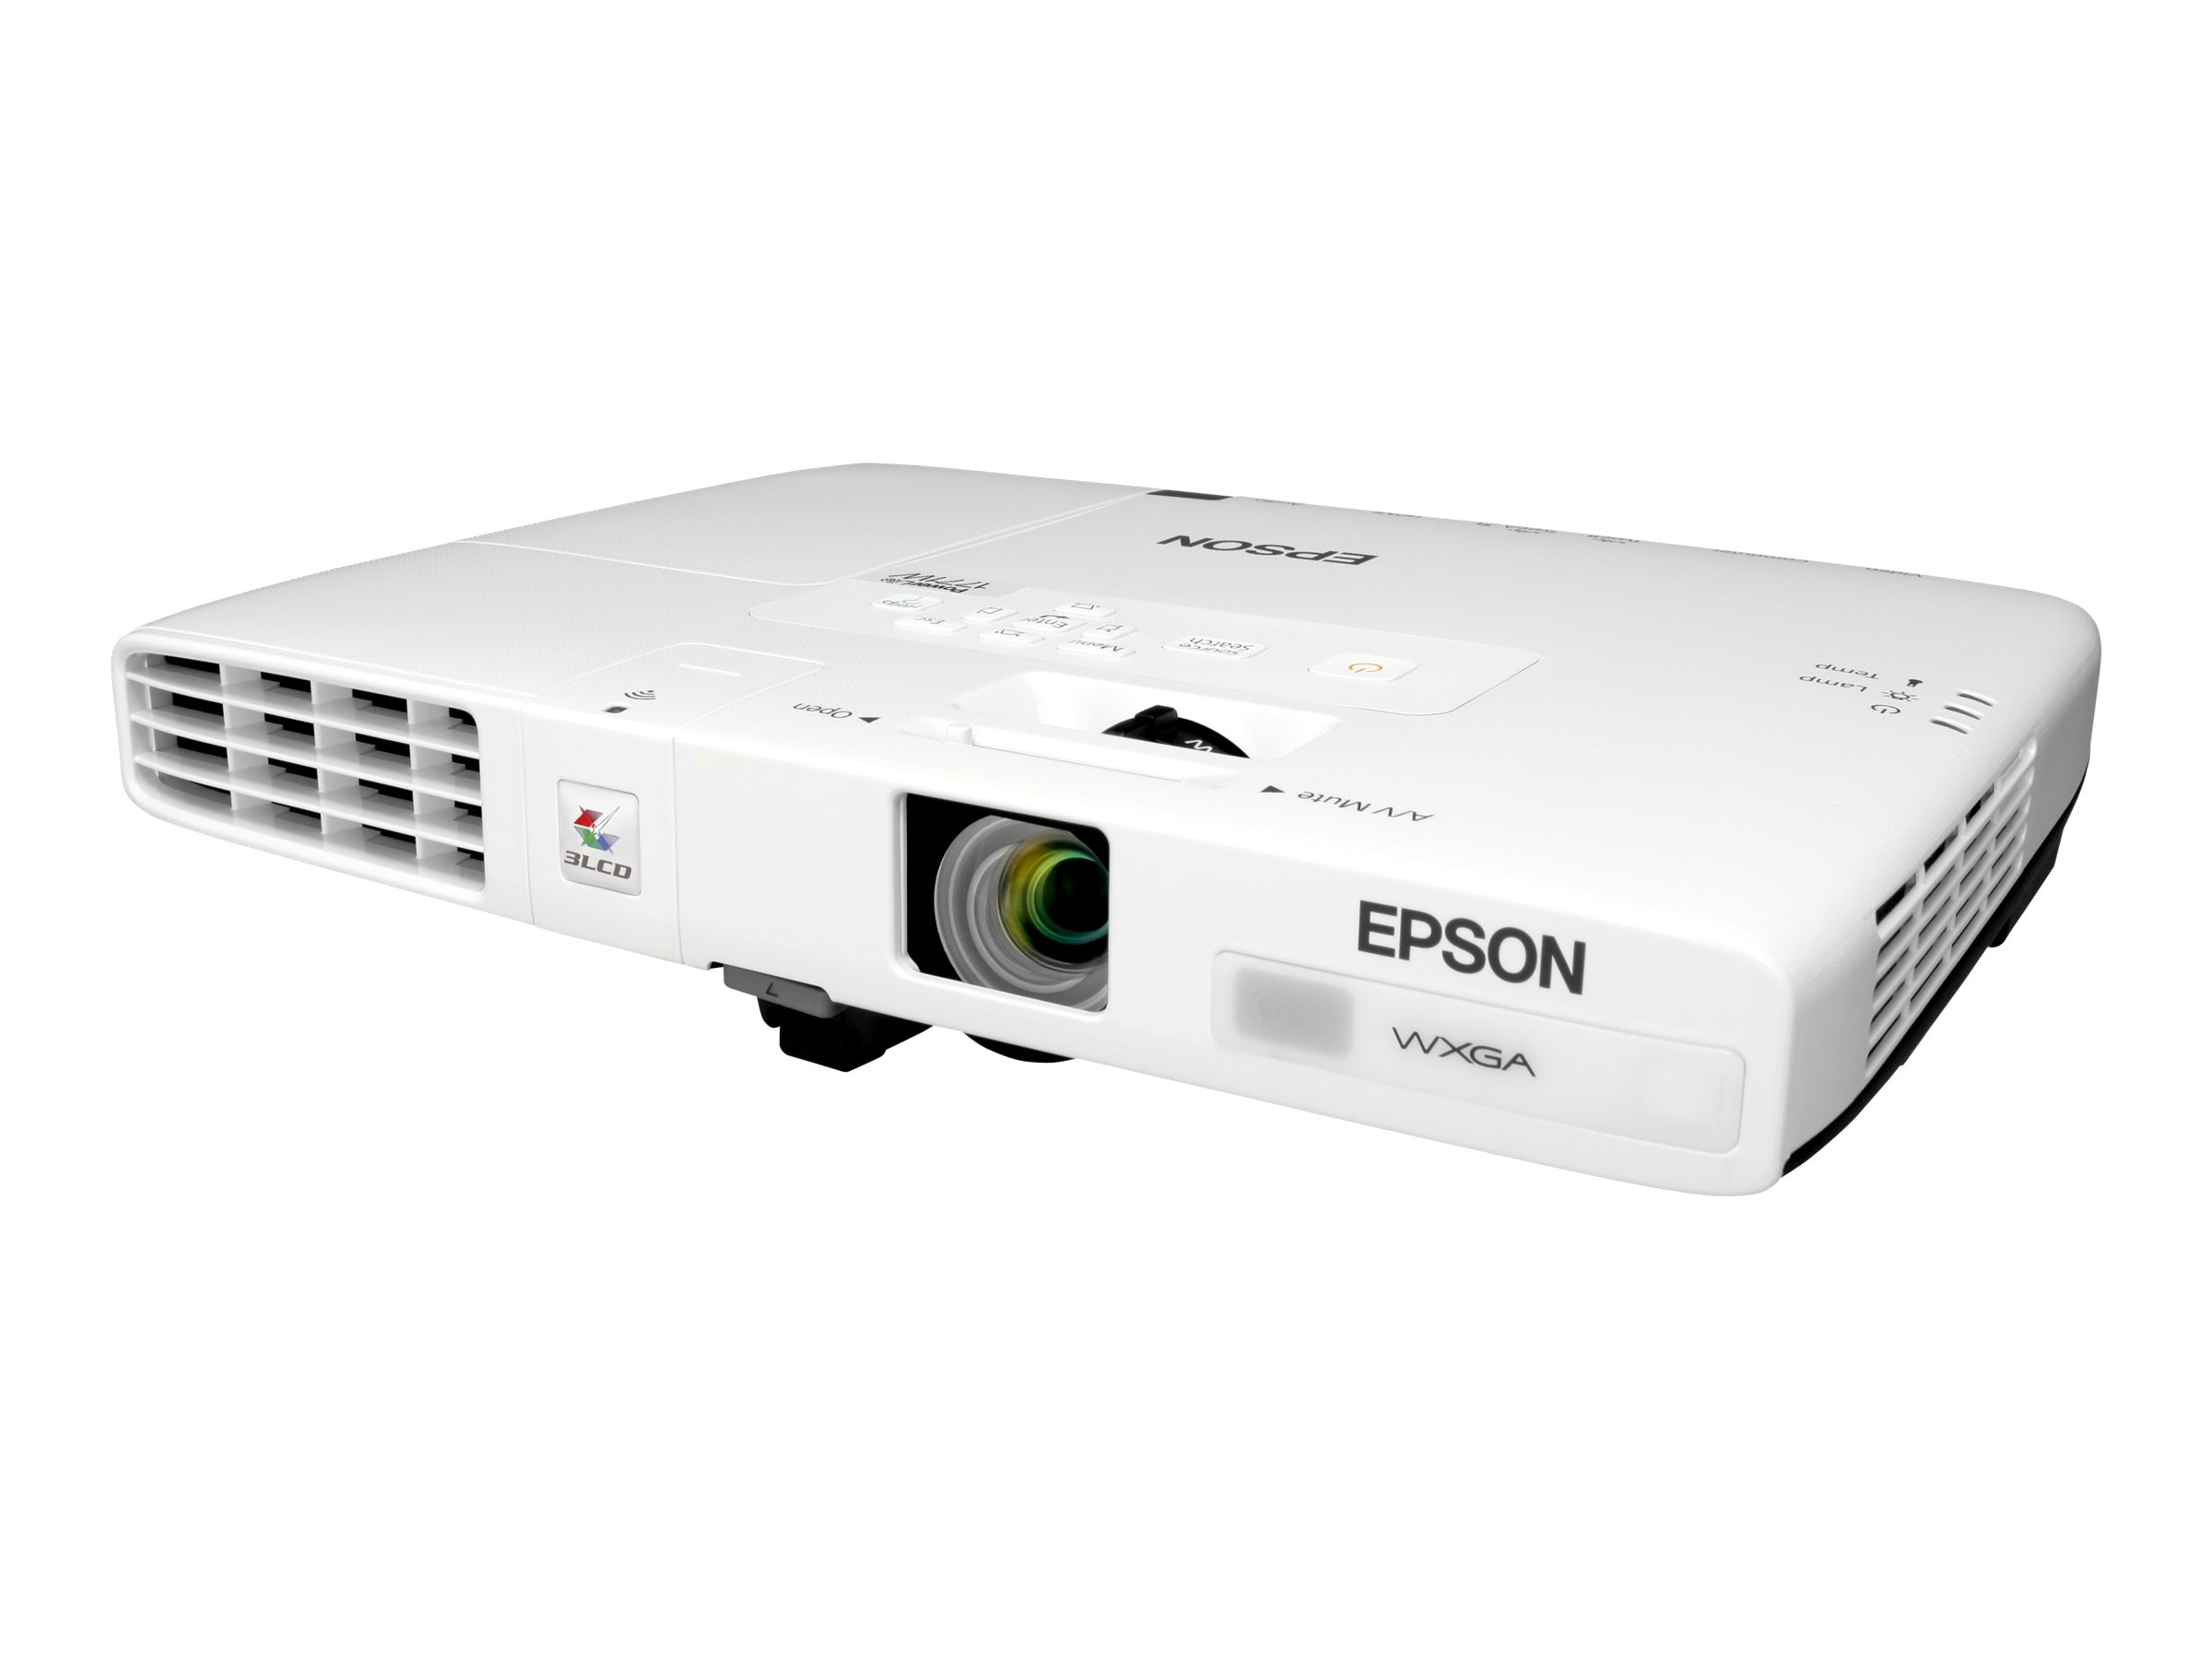 Epson PowerLite 1771W WXGA LCD Projector, 3000 Lumens, White, V11H477020, 14035247, Projectors